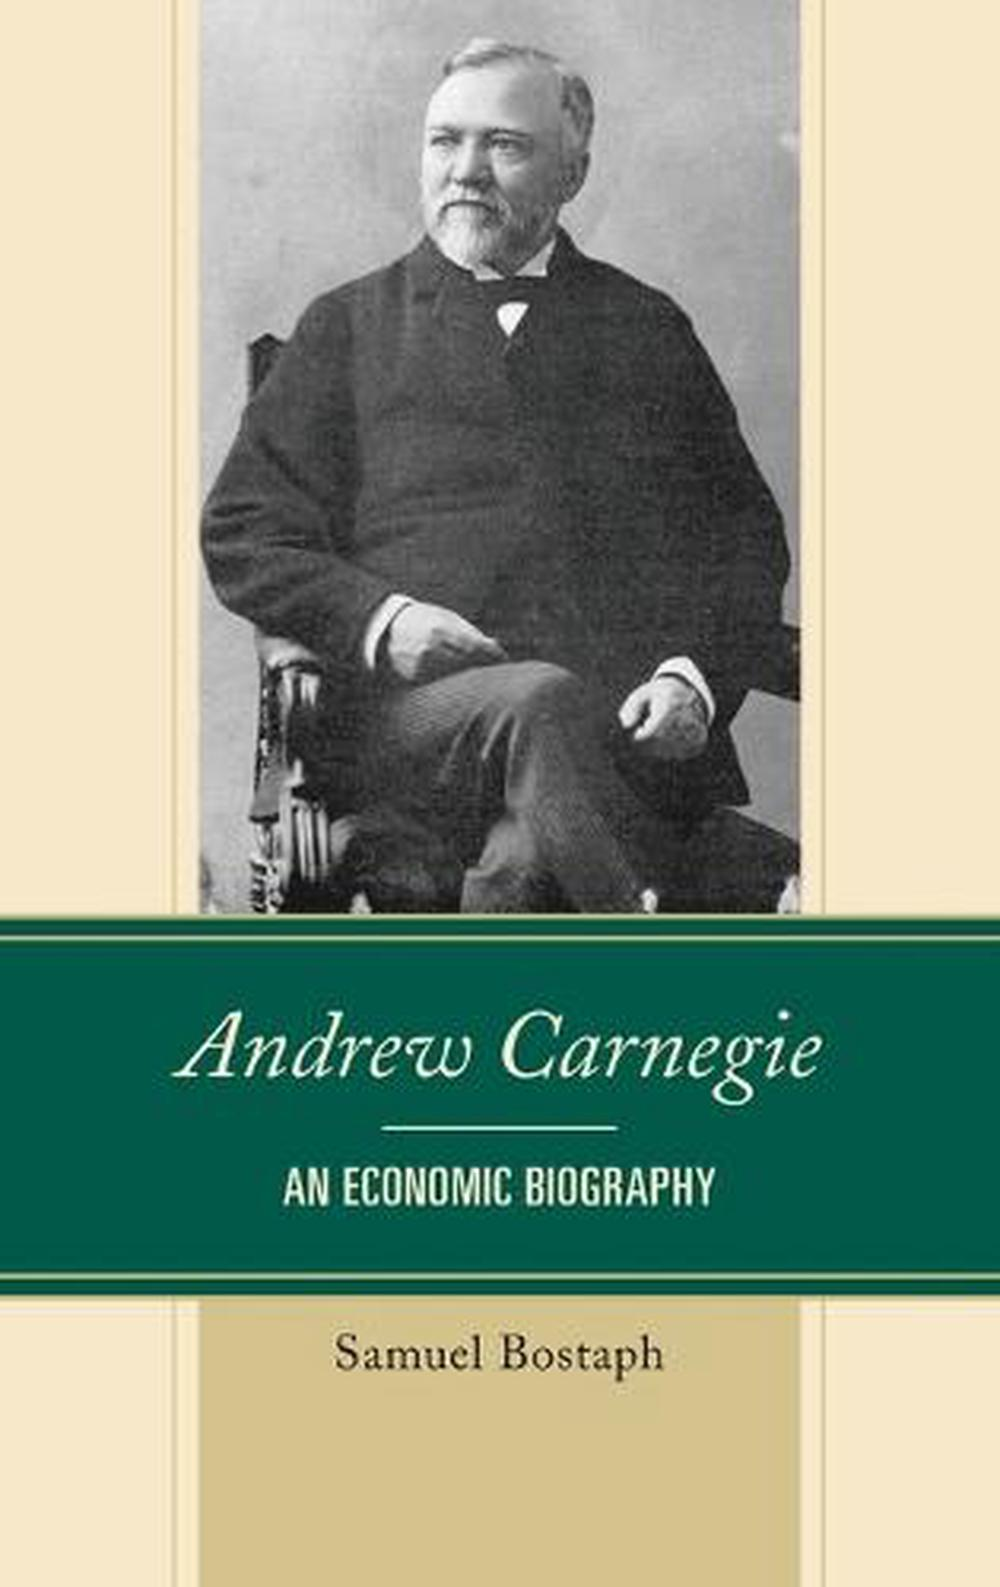 andrew carnegie and the the second industrial Andrew carnegie was born on november 25, 1835, in dunfermline, scotland, the son of william carnegie, a weaver, and margaret morrison carnegie the invention of weaving machines replaced the work carnegie's father did, and eventually the family was forced into poverty.